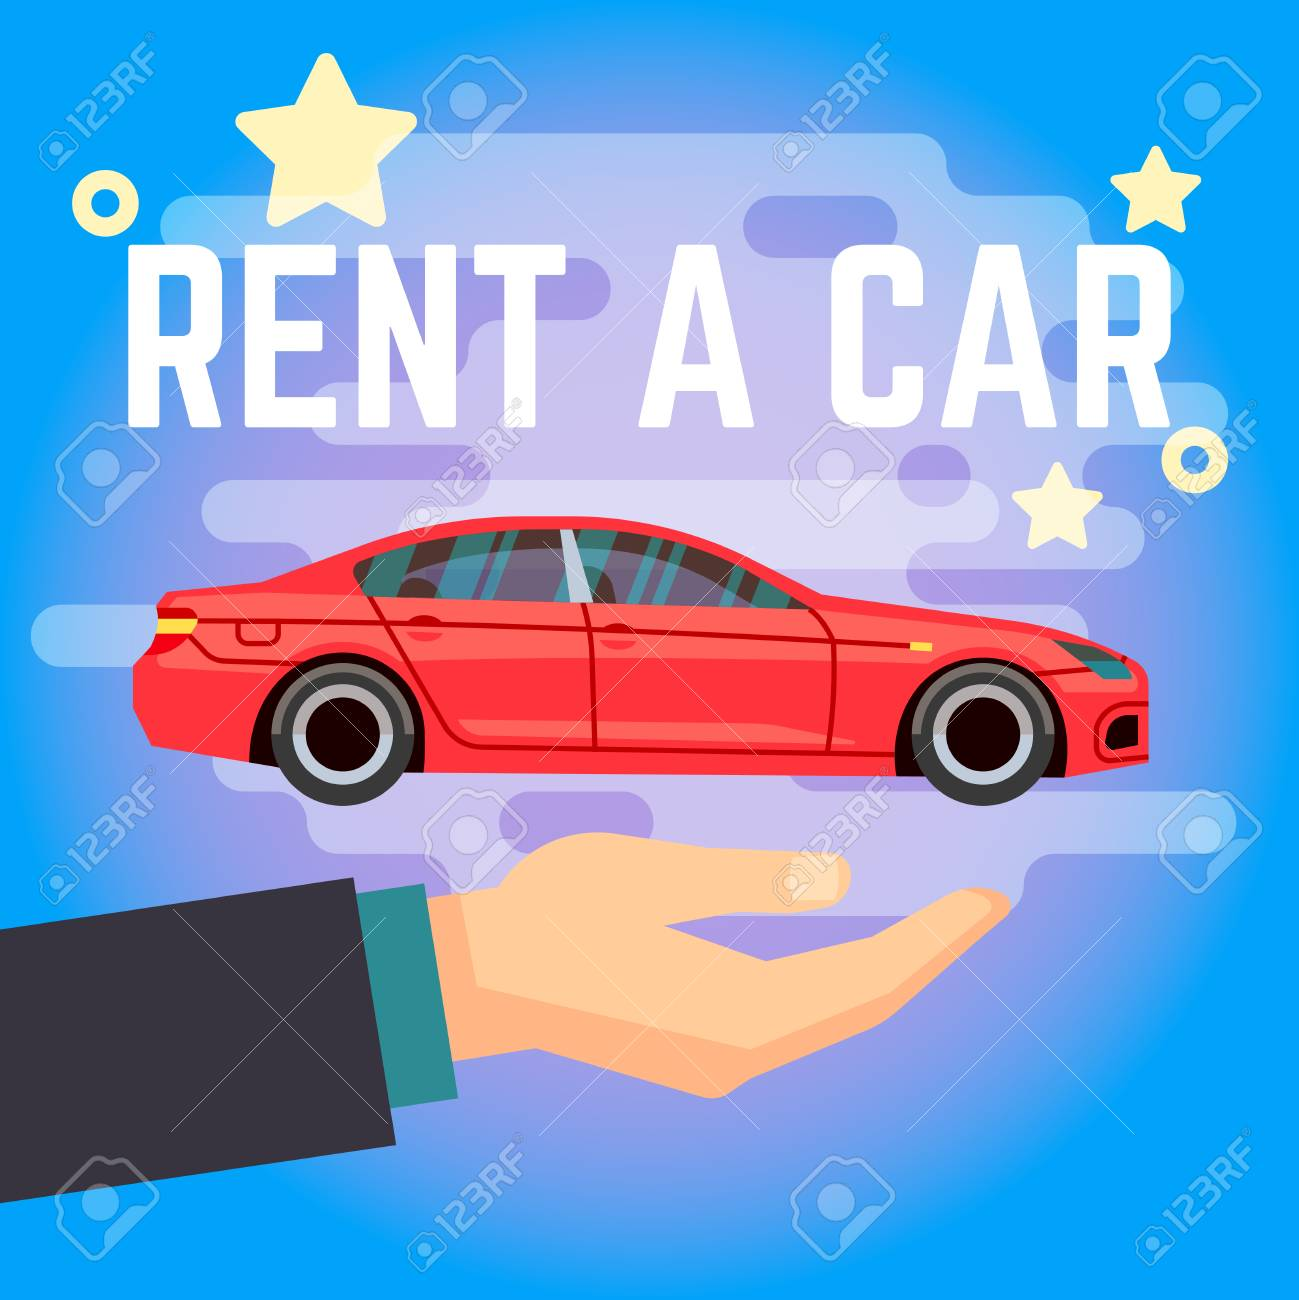 Car Rent Vector Illustration Hand With Flat Style Red Car On Royalty Free Cliparts Vectors And Stock Illustration Image 86851781